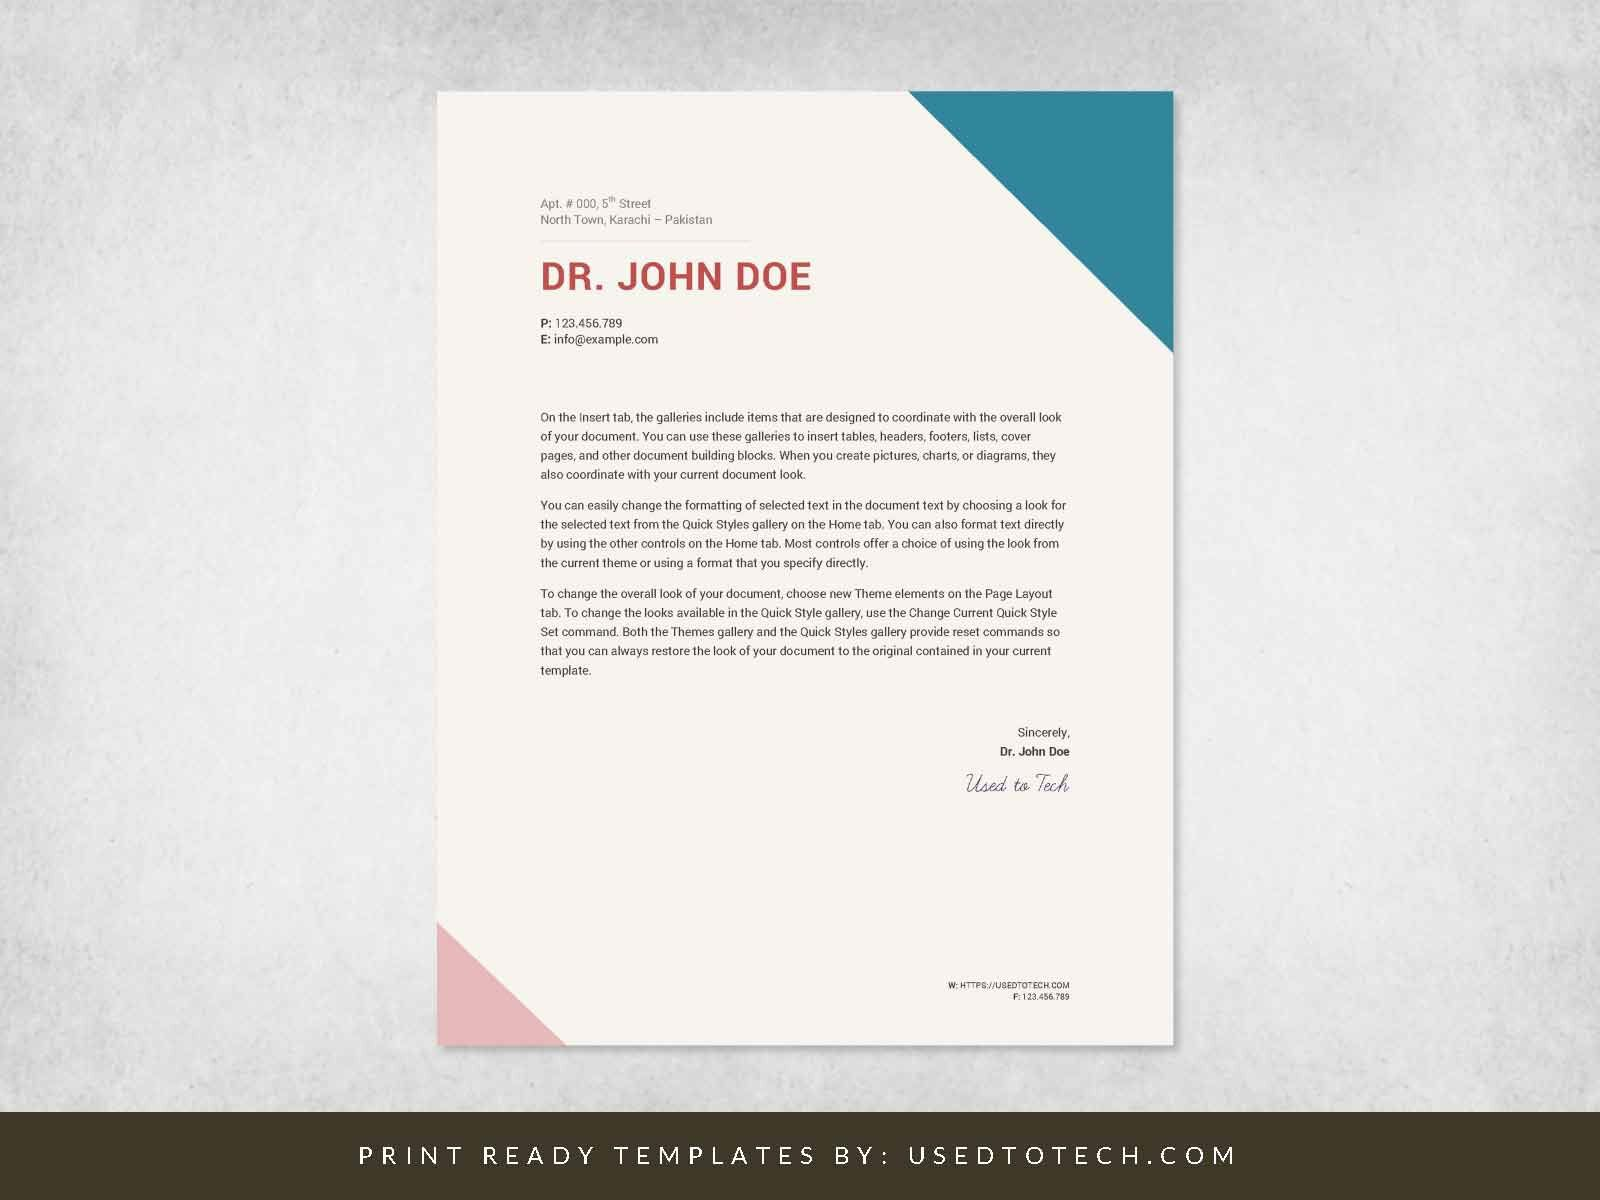 003 Fascinating Letterhead Format In M Word Free Download Concept Full